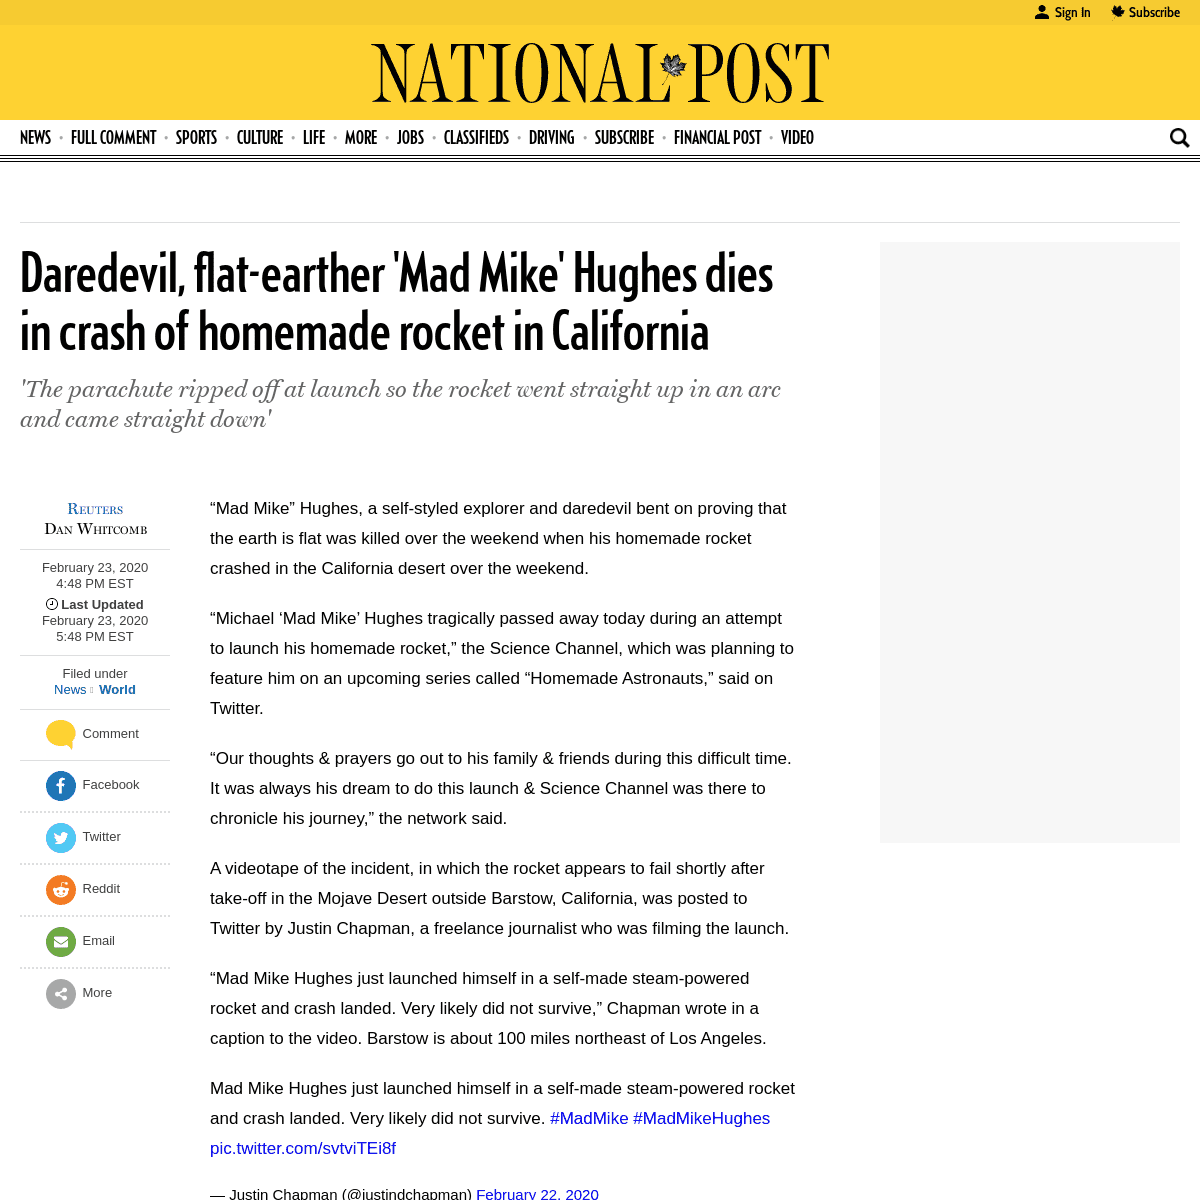 Daredevil, flat-earther 'Mad Mike' Hughes dies in crash of homemade rocket in California - National Post